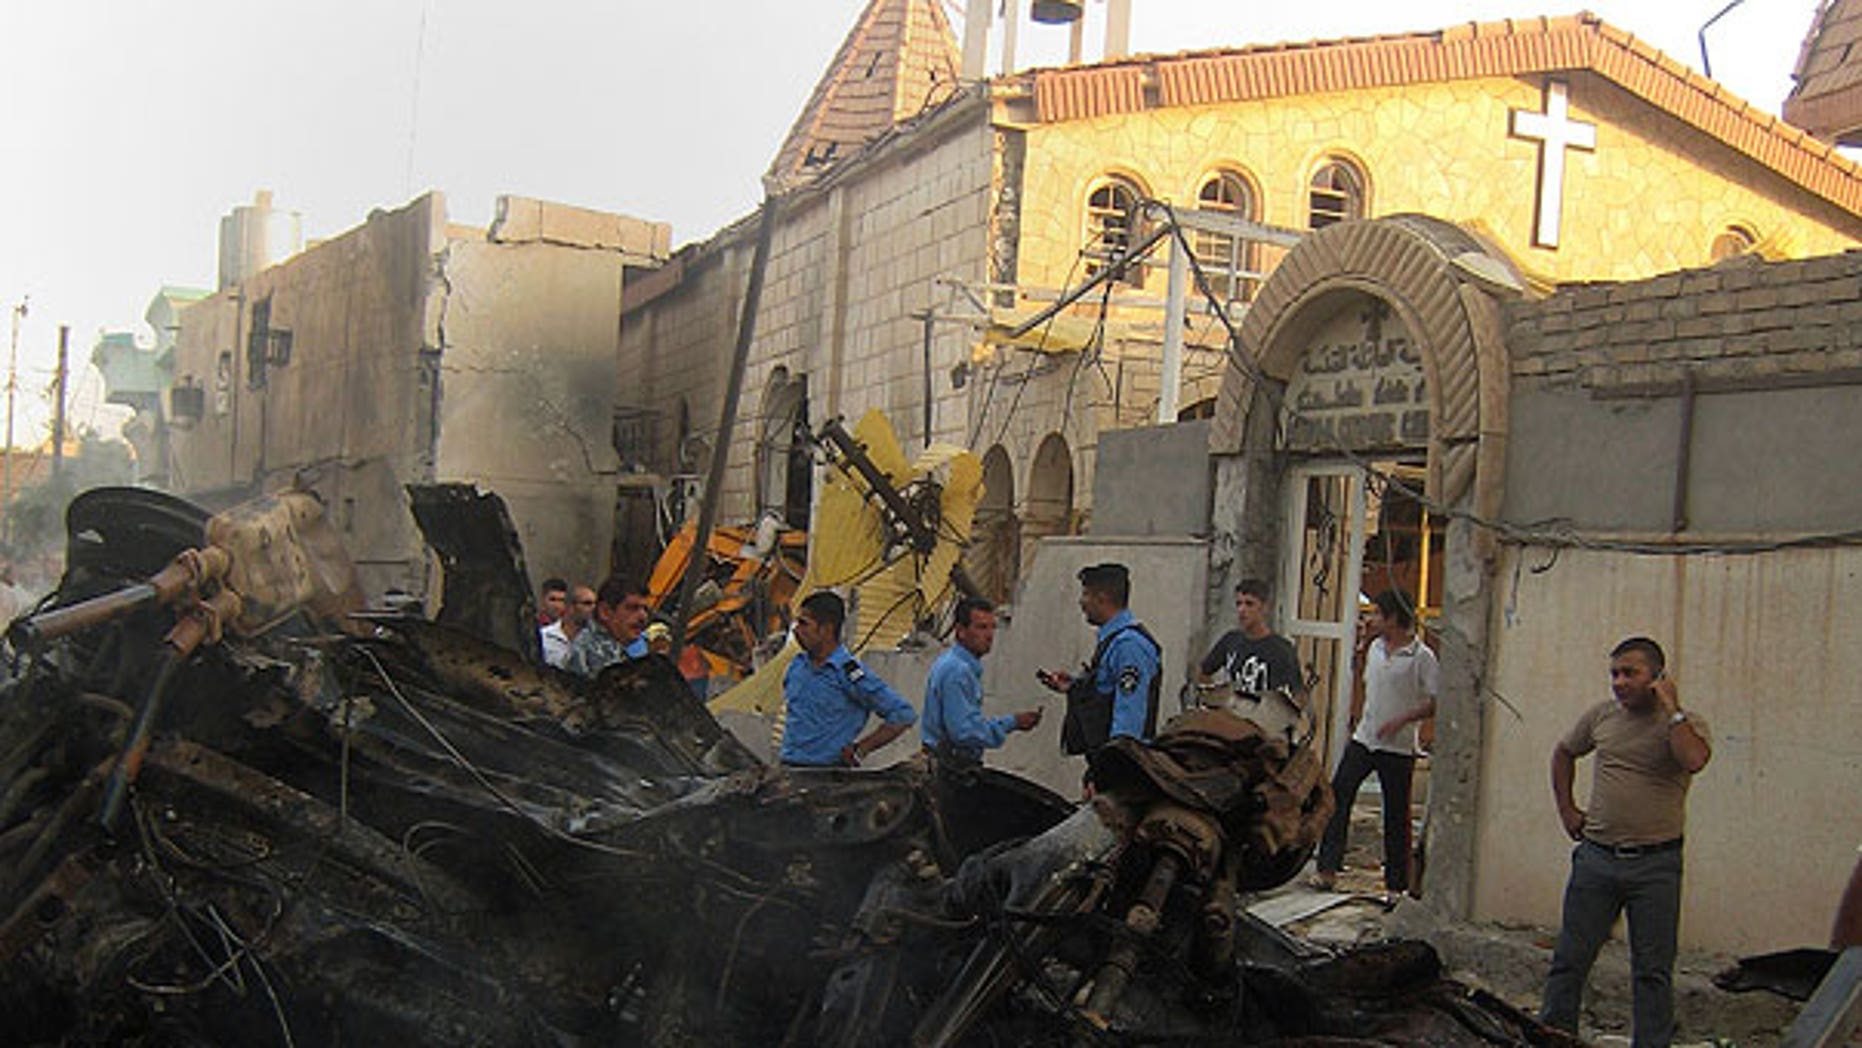 Aug. 2: Iraqis inspect the site of an early morning car bomb attack in front of a Church in Kirkuk, 180 miles north of Baghdad, Iraq.